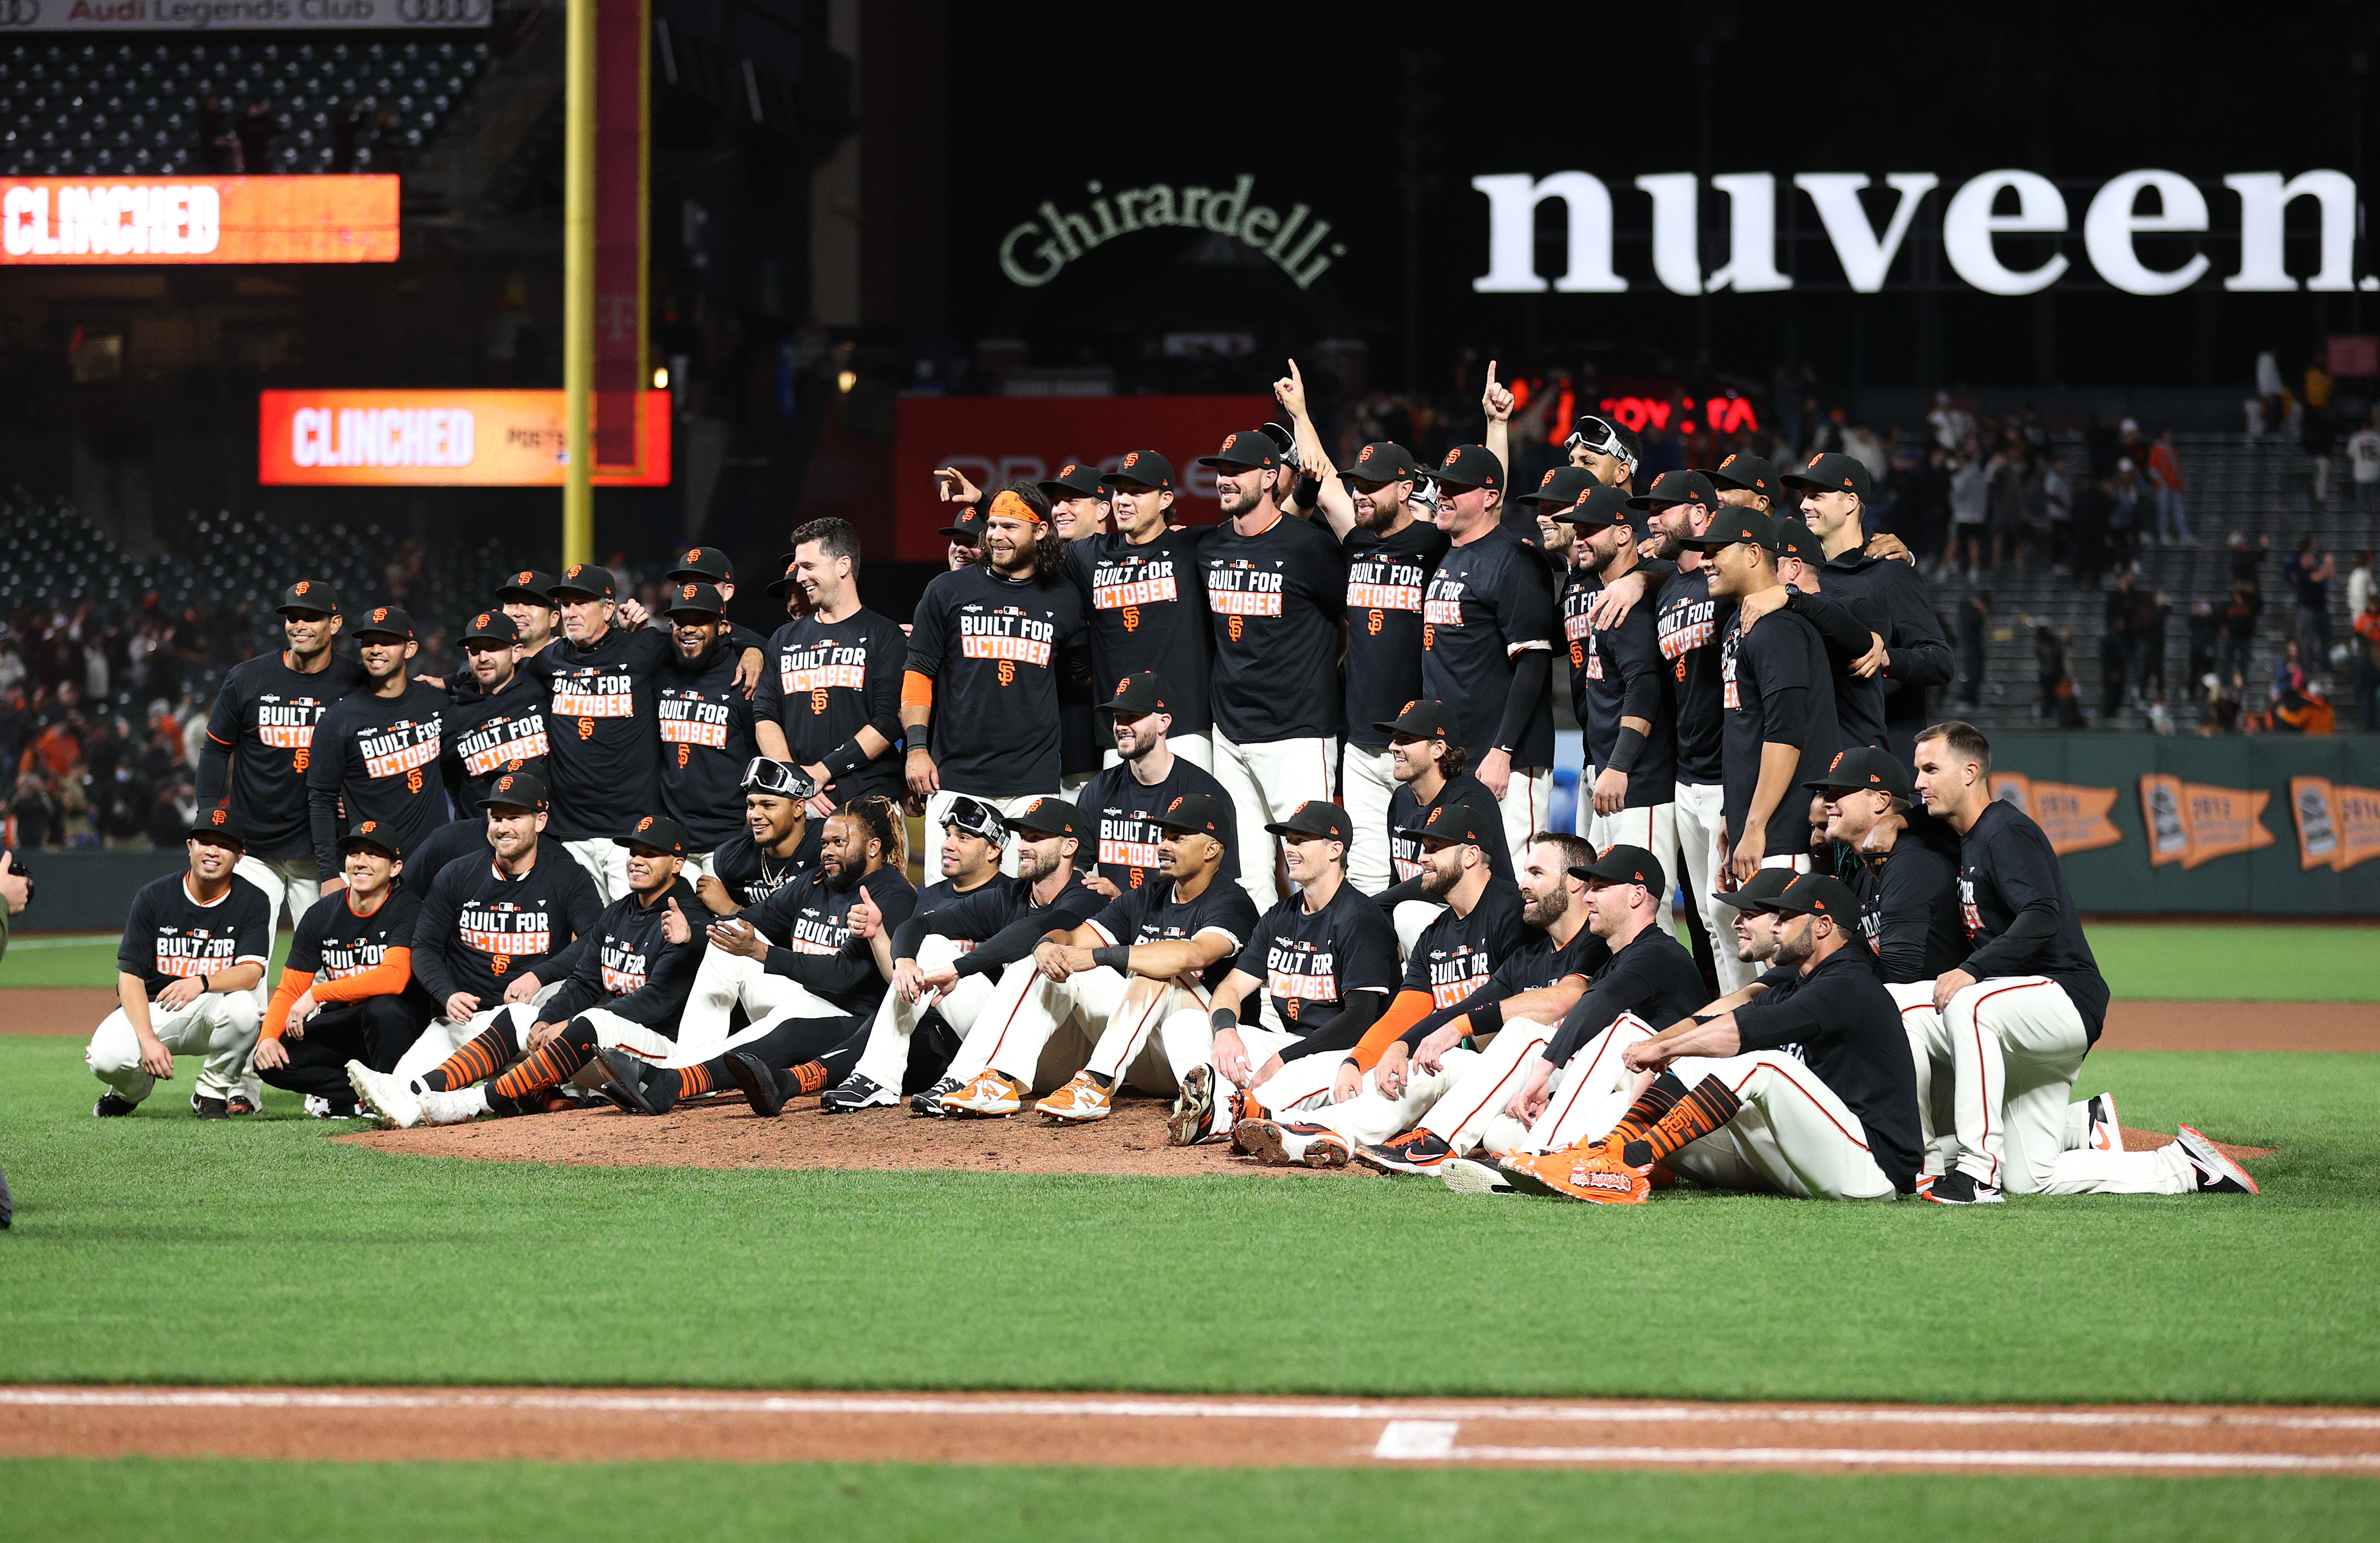 The San Francisco Giants pose for a team photo on the field after they clinched a playoff birth by beating the San Diego Padres at Oracle Park on September 13, 2021 in San Francisco, California.